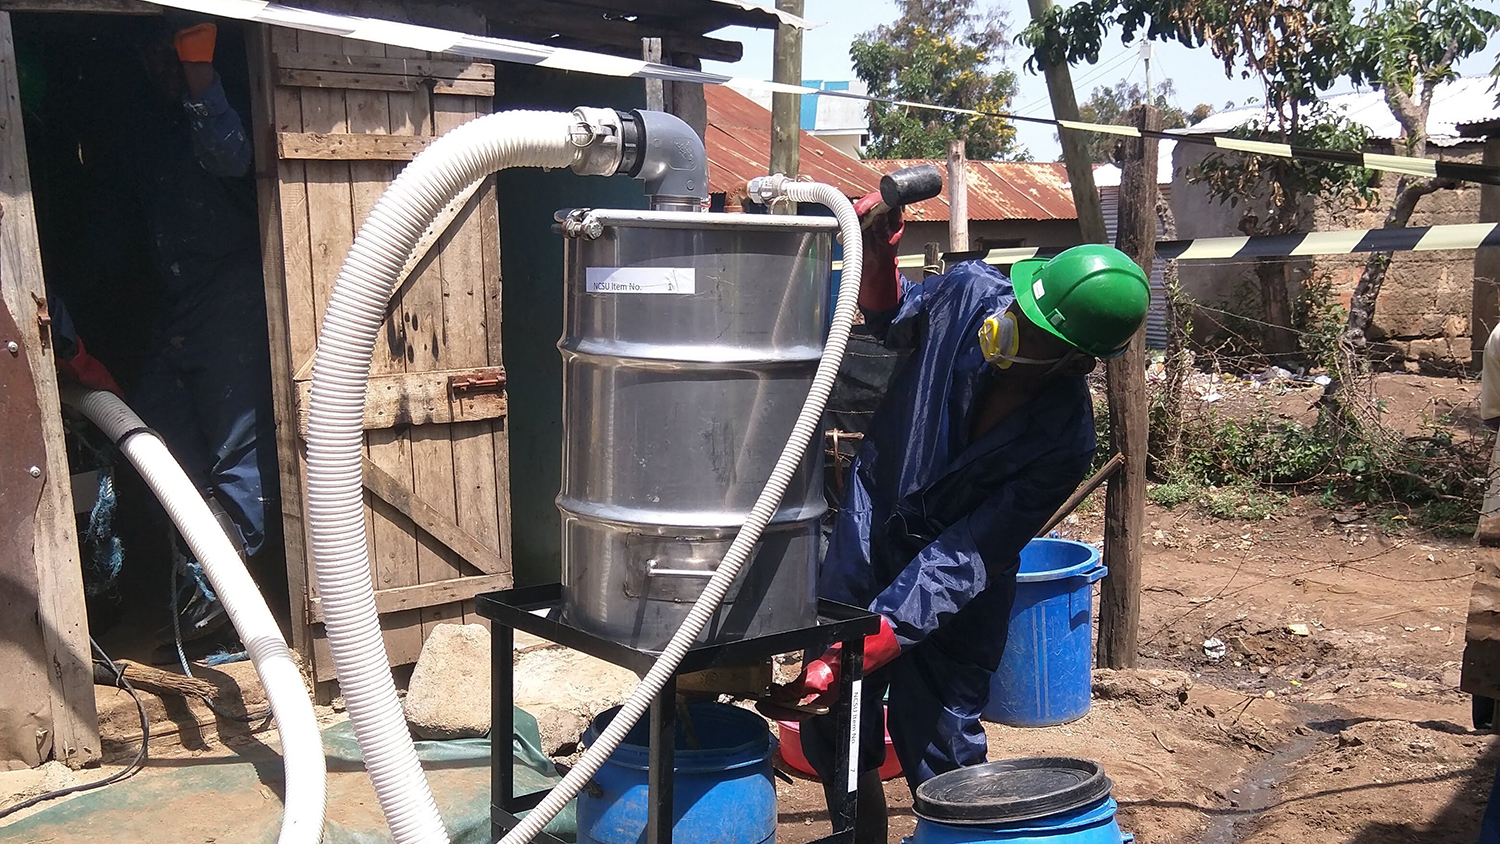 The Flexcrevator, a pit latrine emptying device designed by NC State researchers.